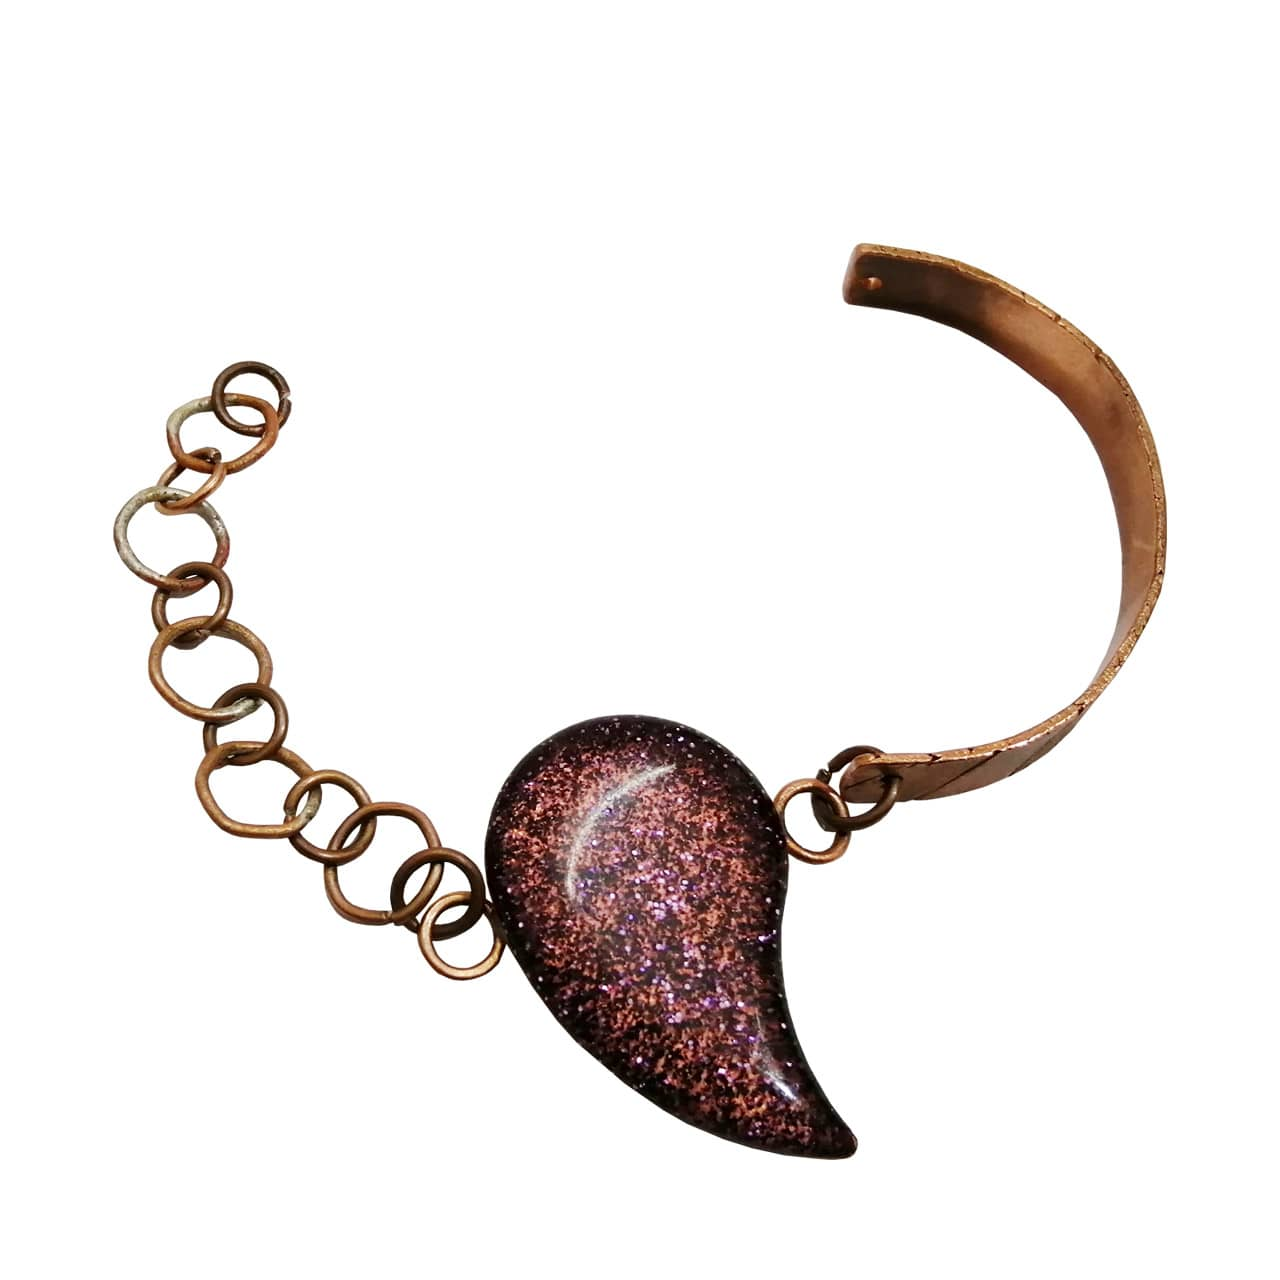 Copper-bracelet-with-resin-decoration